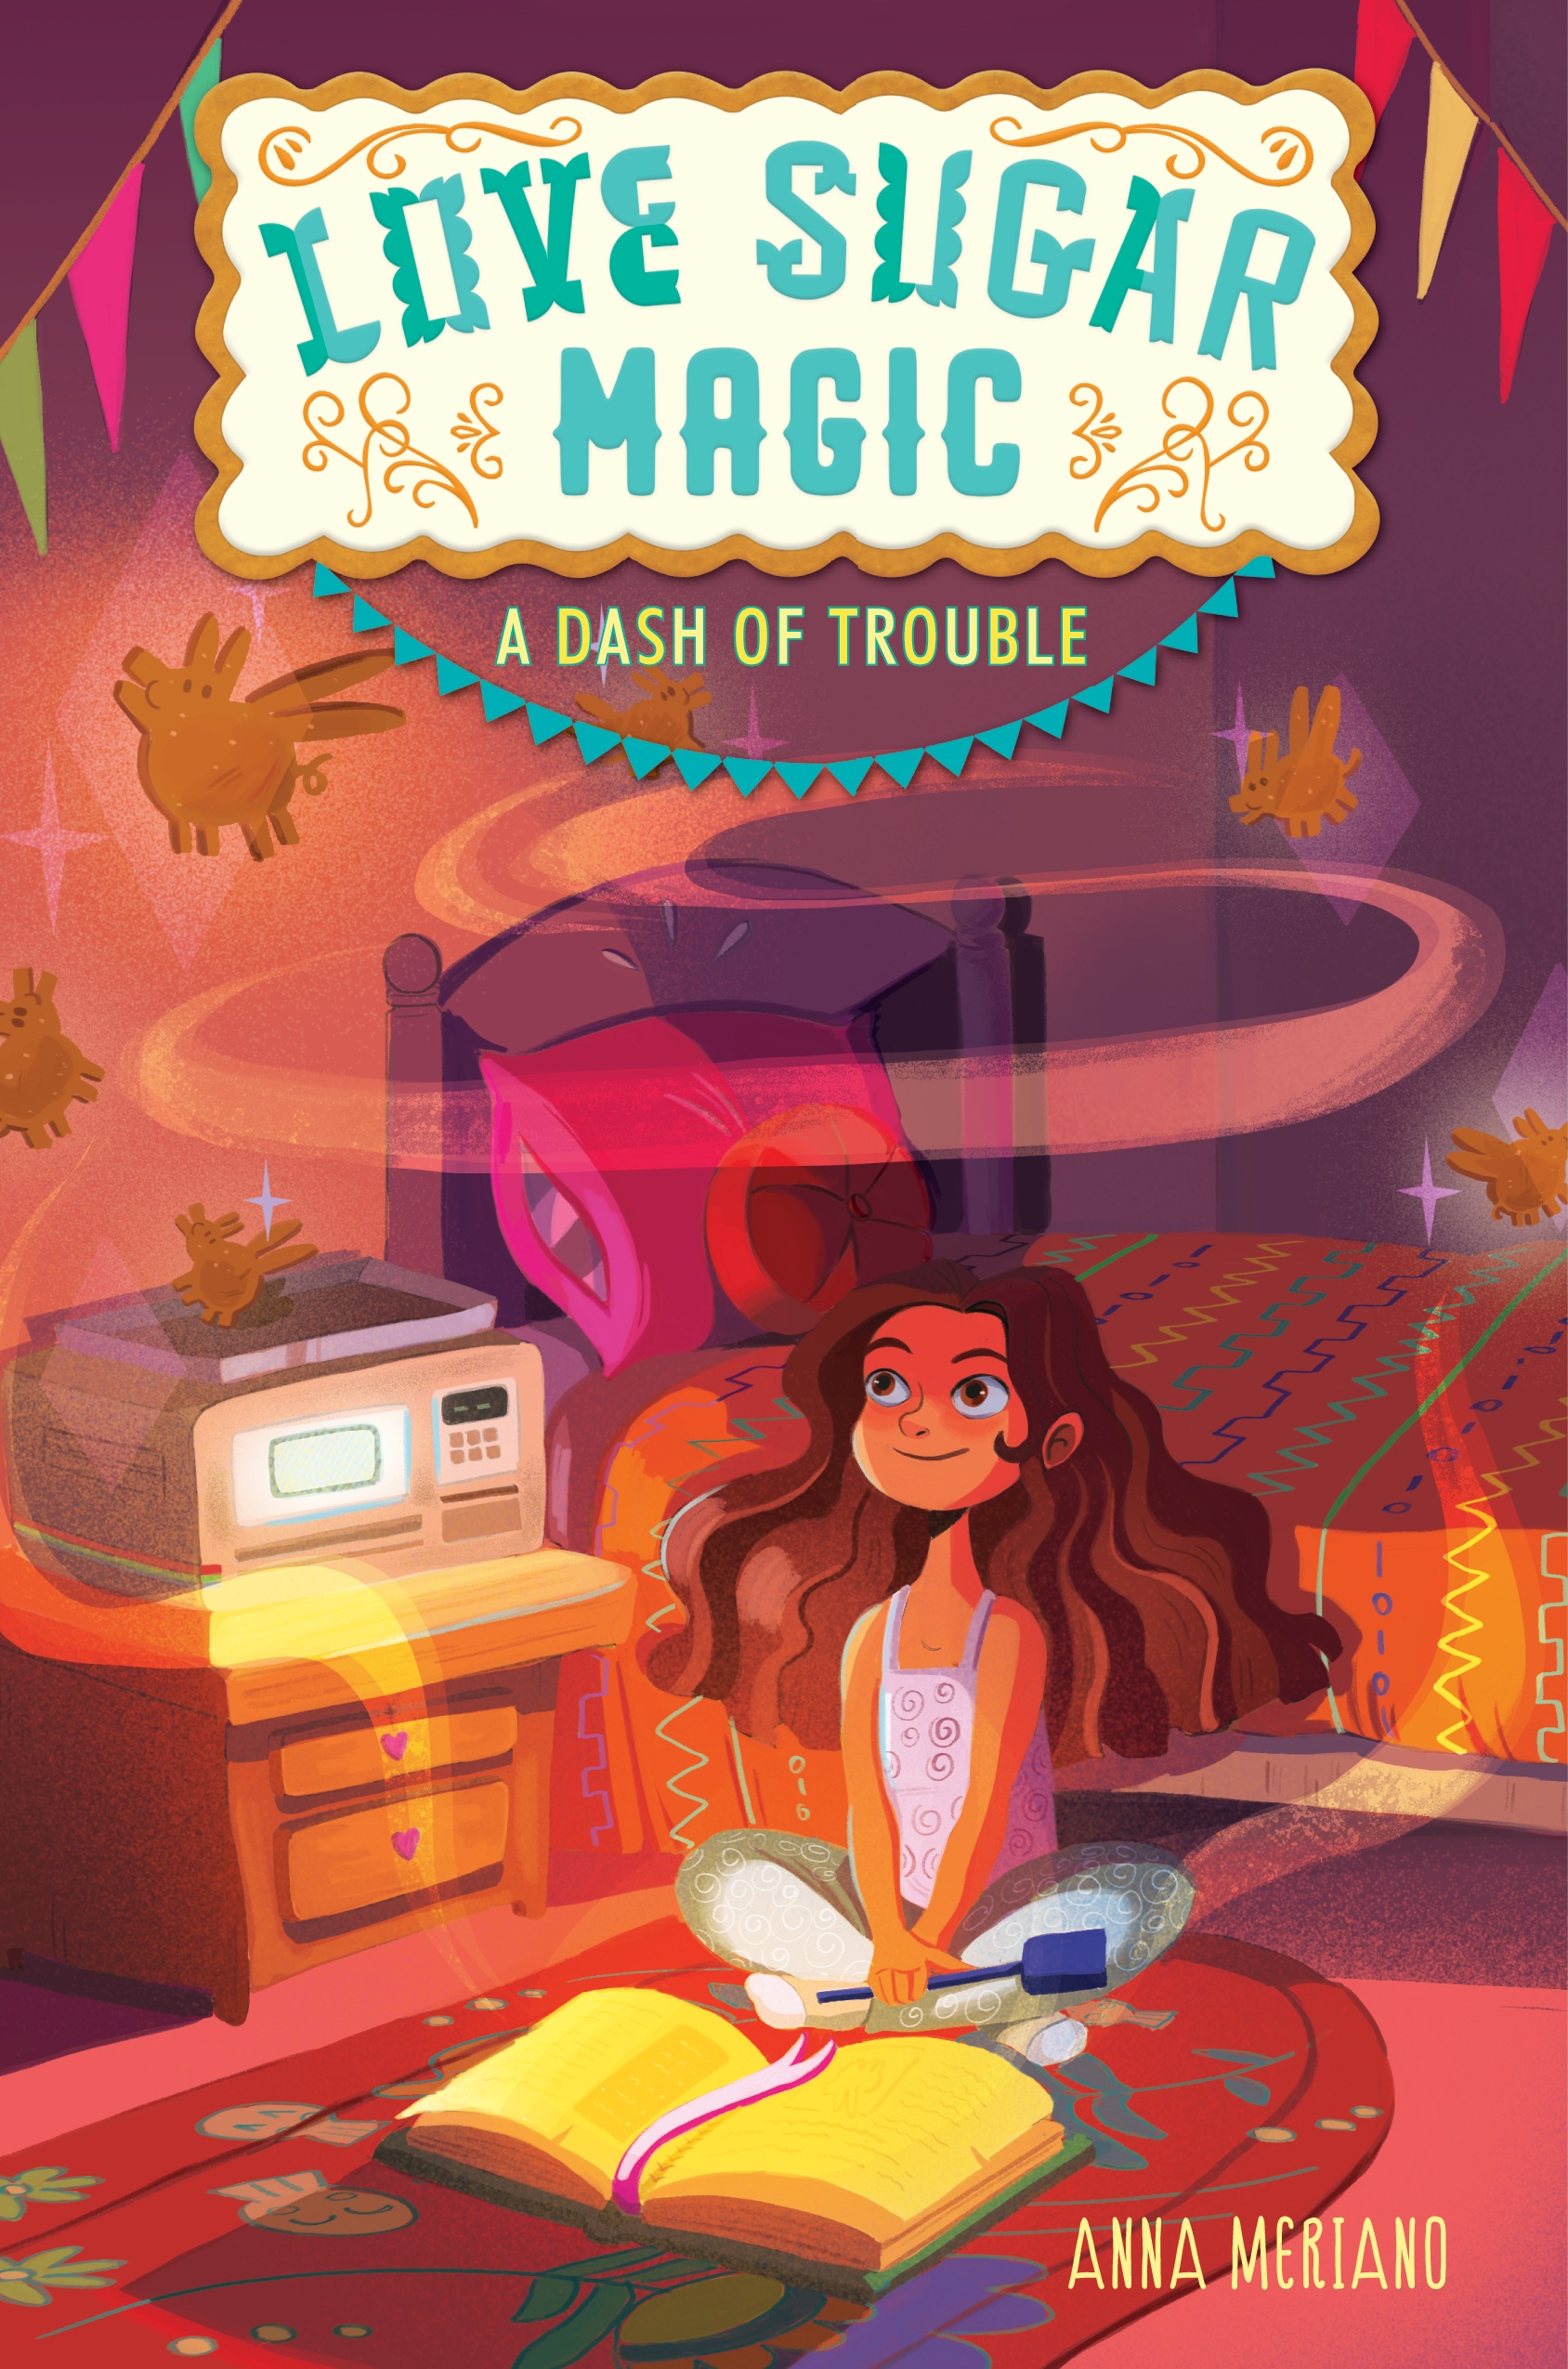 Cover of Love Sugar Magic: A Dash of Trouble by Anna Meriano